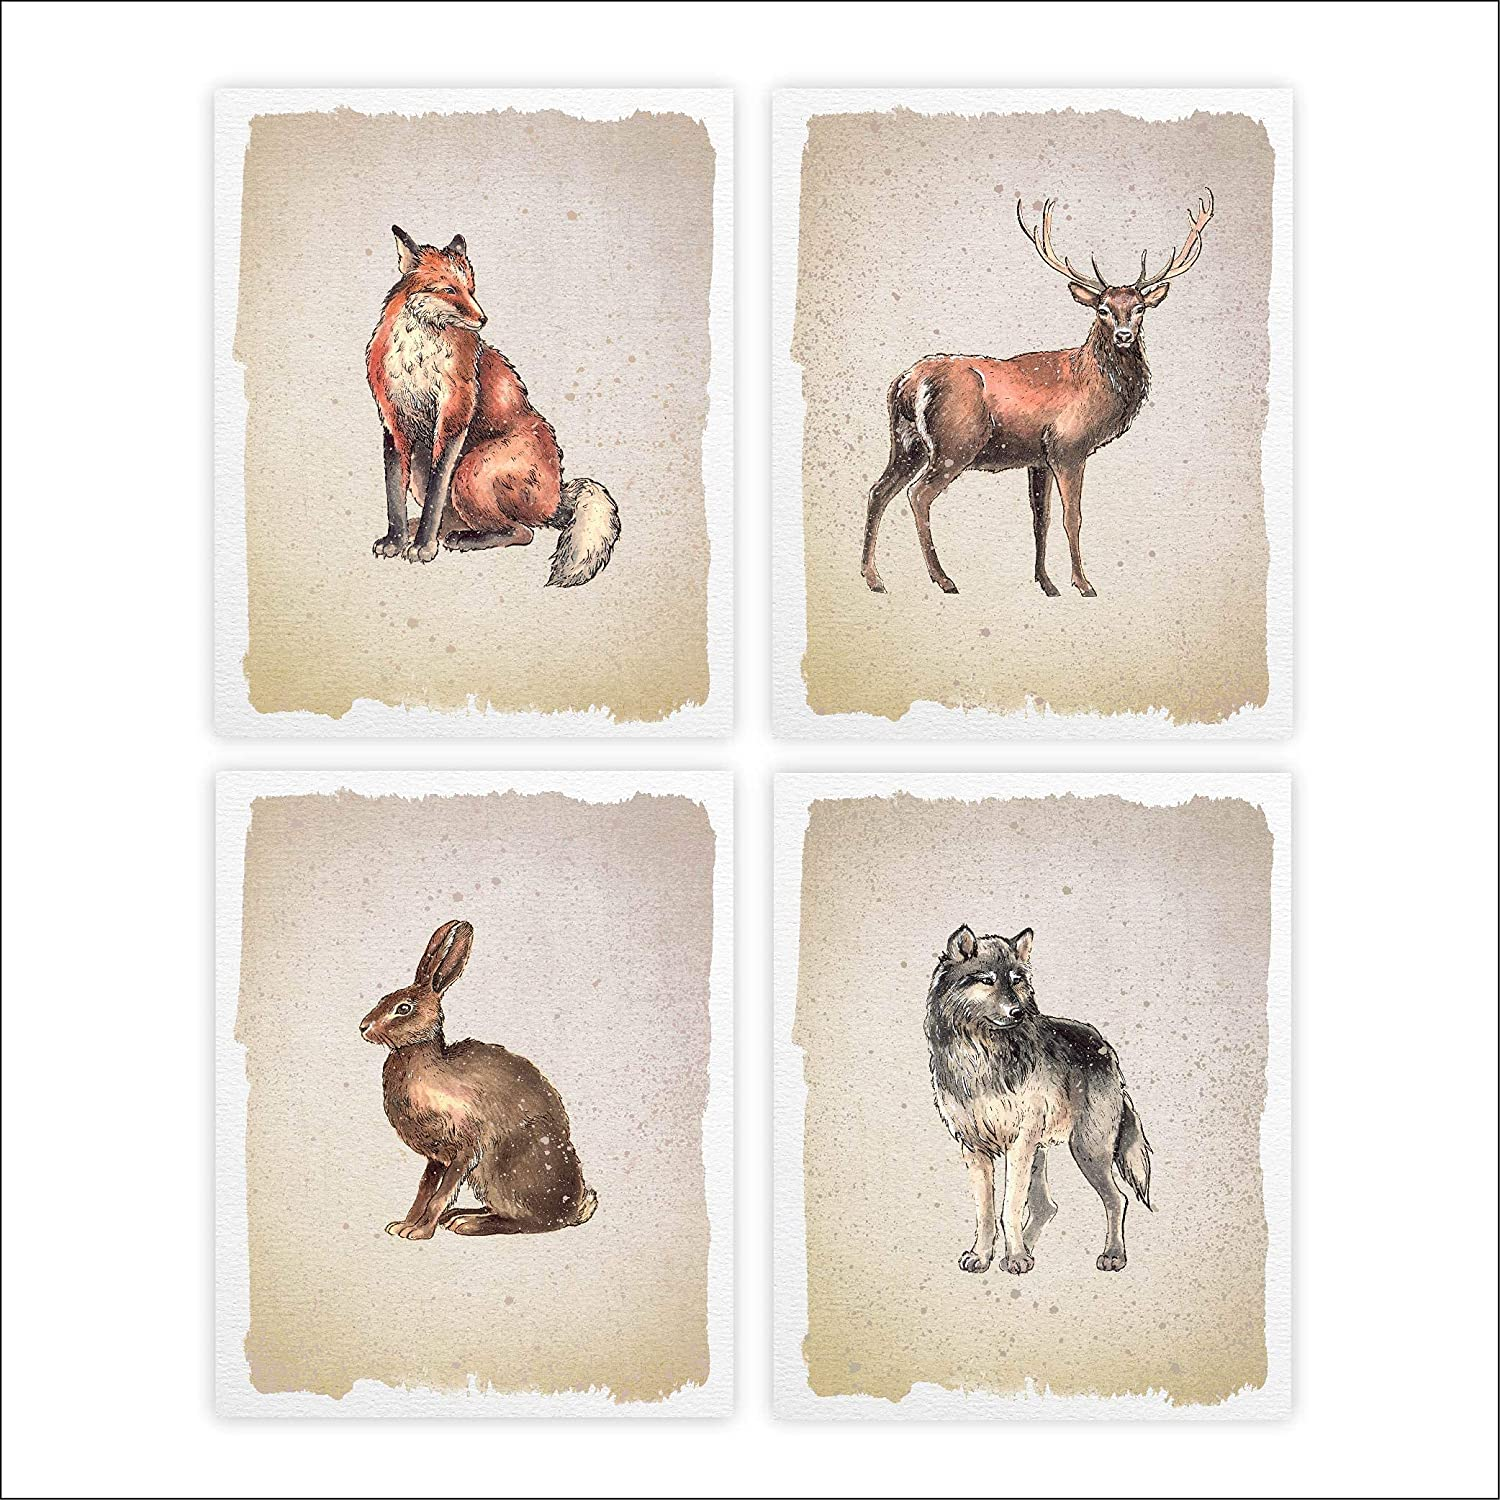 Wild Animals Art Prints Max 75% OFF Set 8x10s All items free shipping - 4 Unframed of